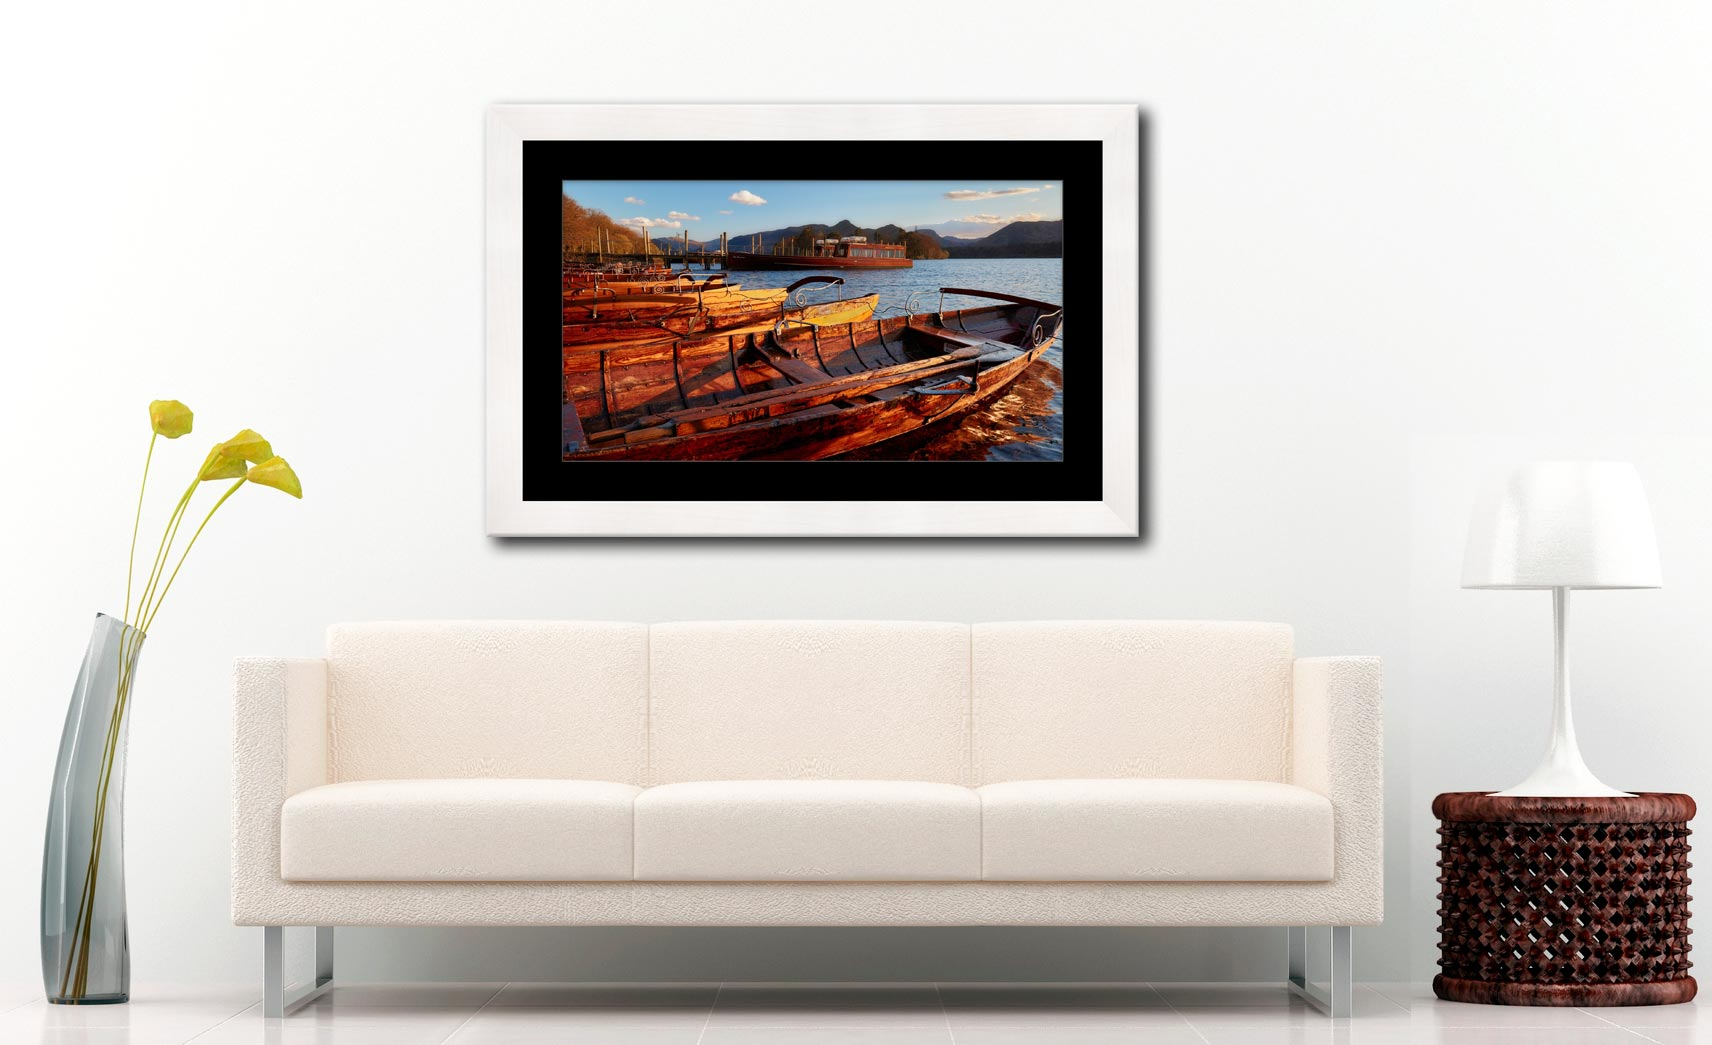 Golden Boats at Dusk - Framed Print with Mount on Wall